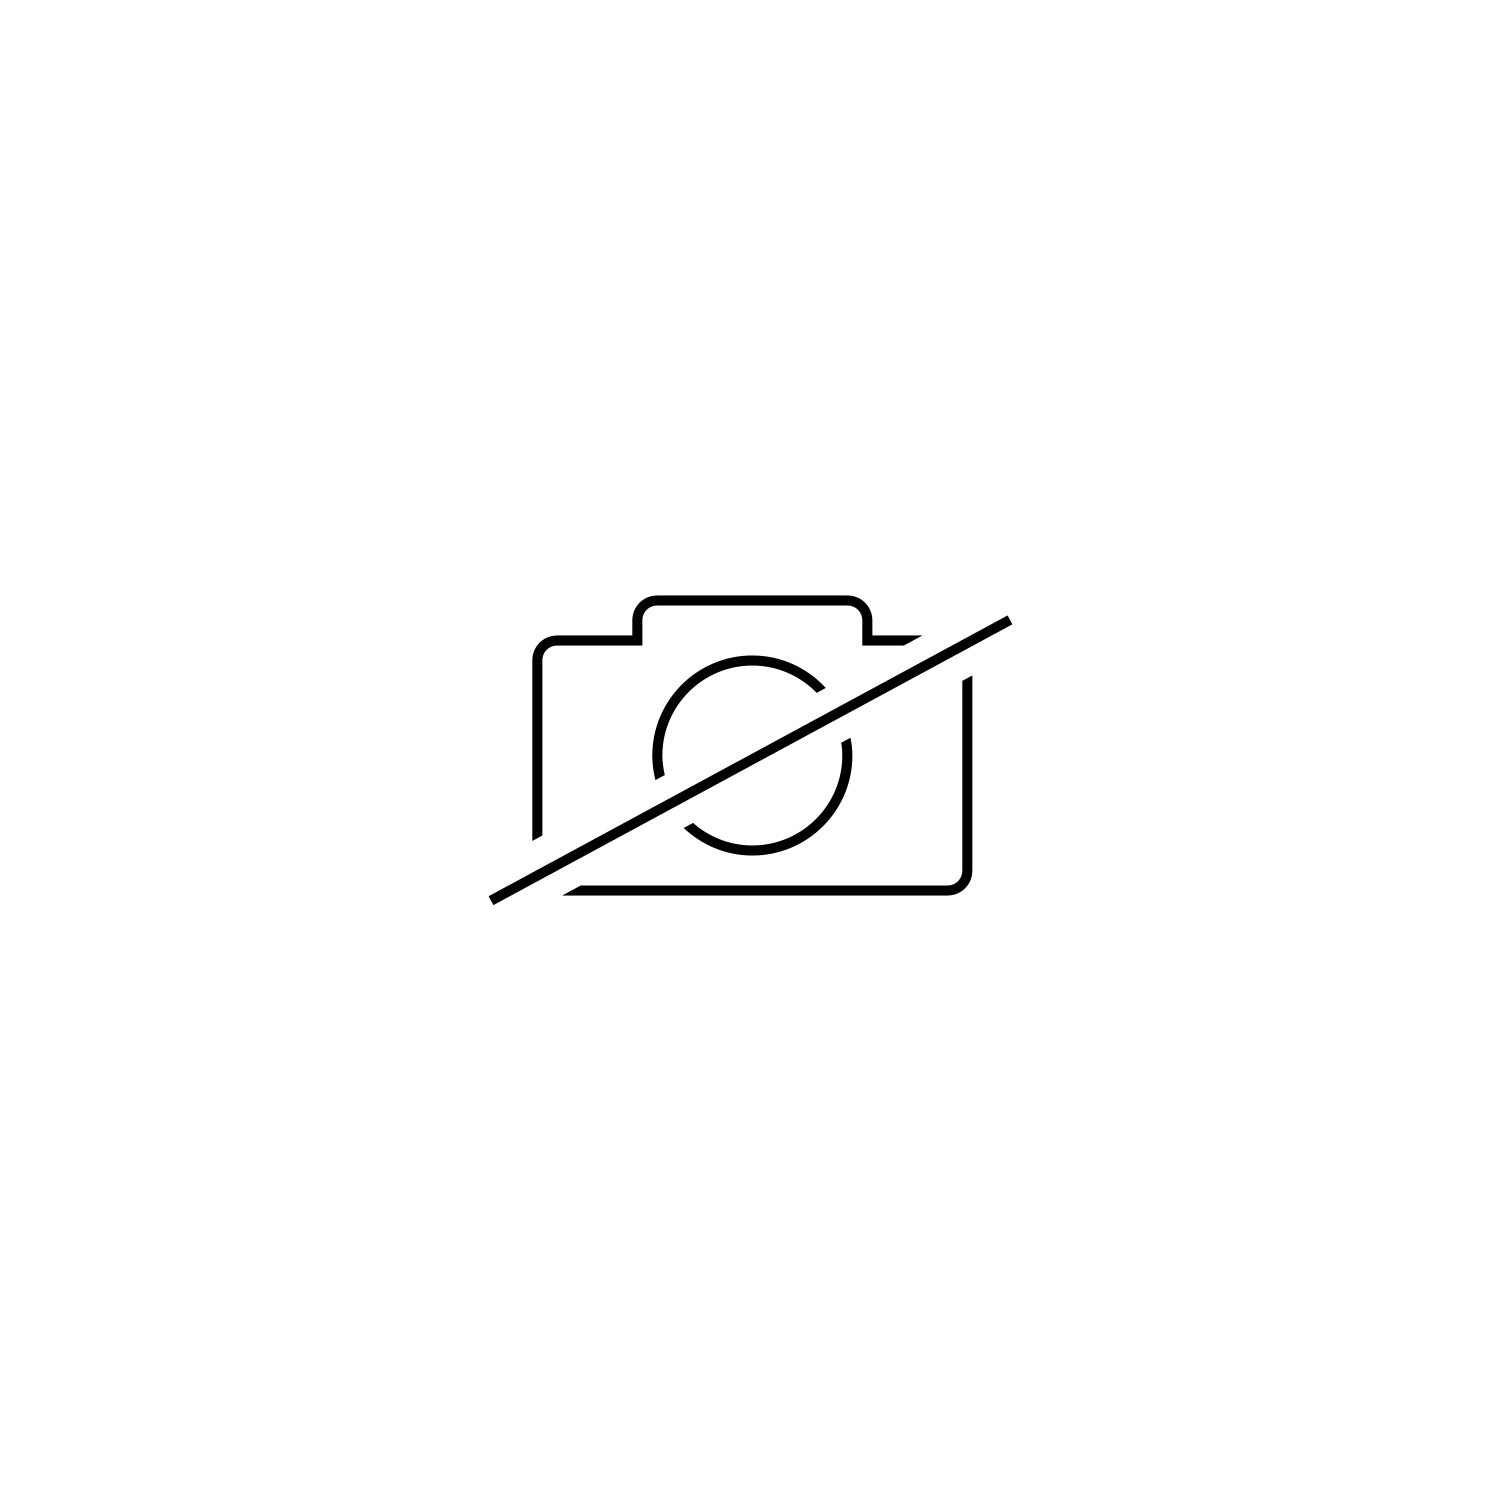 Audi fleece blanket 2in1, black